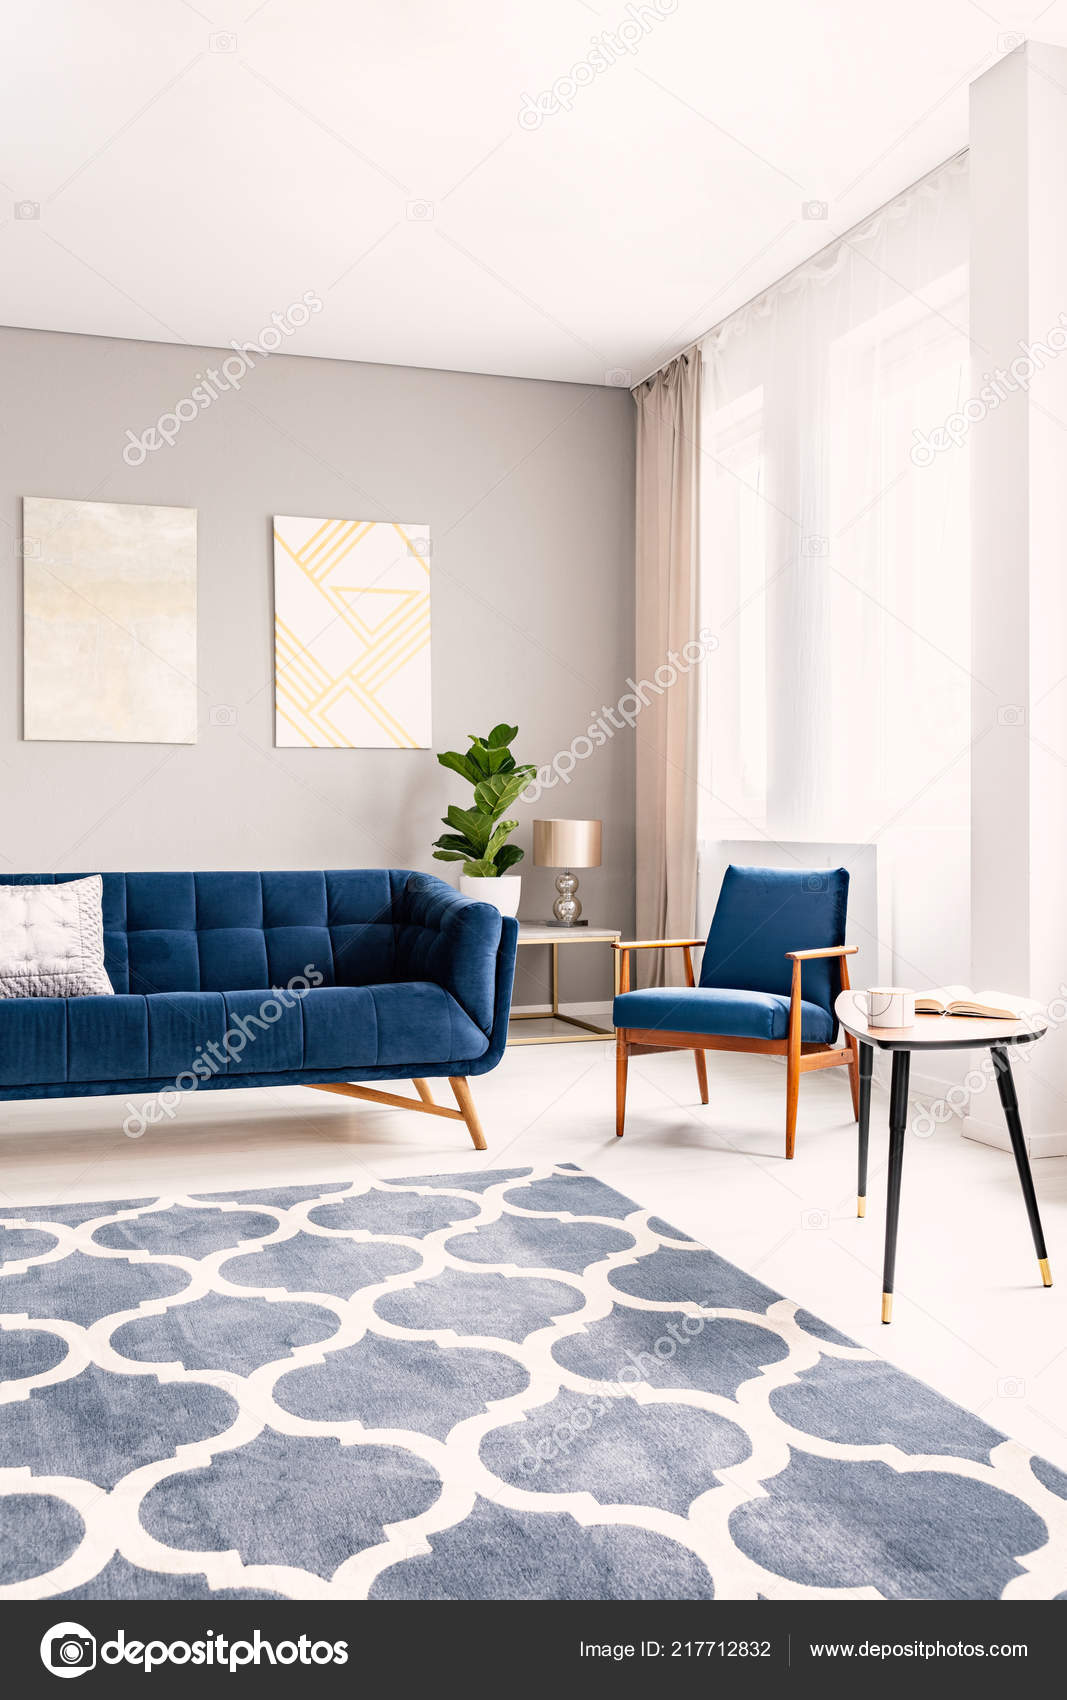 Elegant Living Room Interior Dark Blue Couch Matching Armchair Large Stock Photo Image By Photographee Eu 217712832